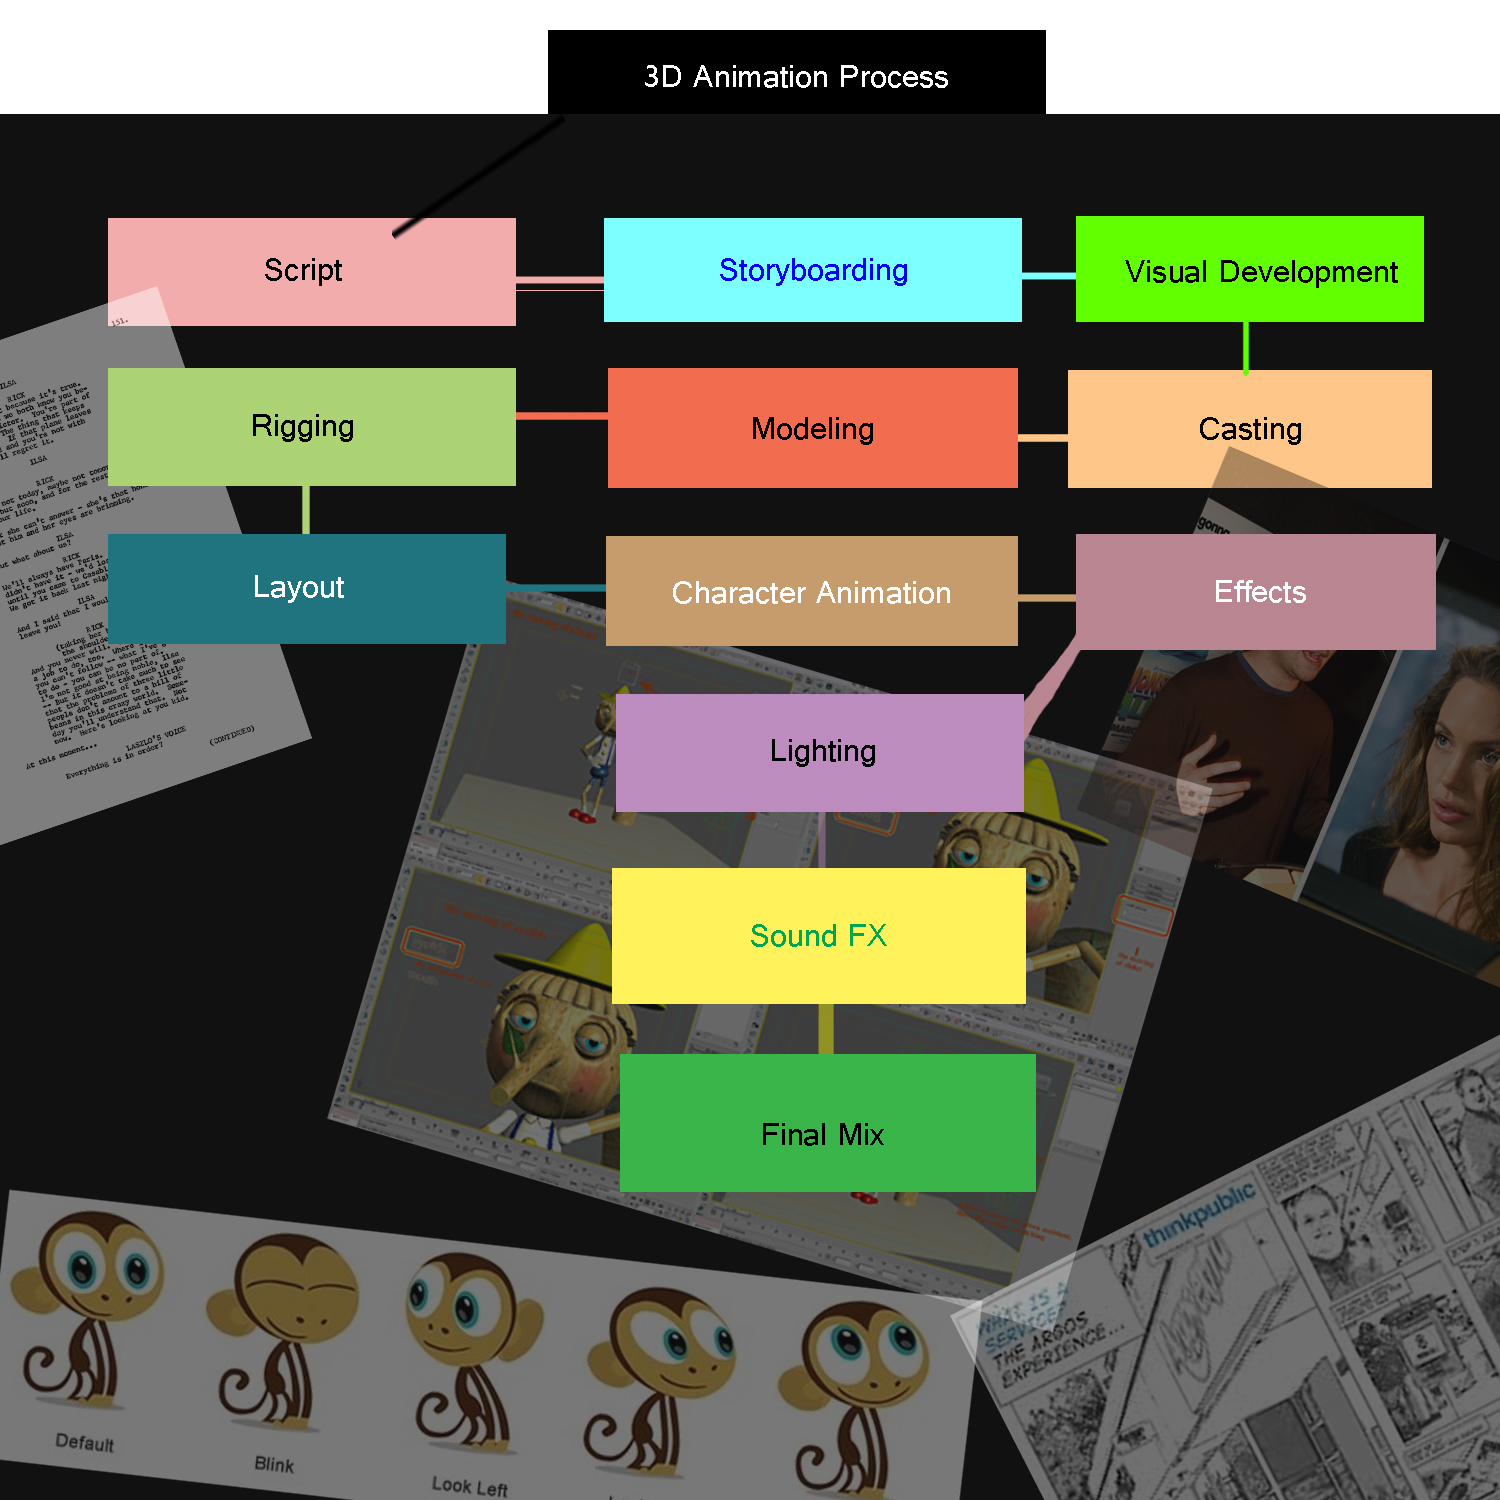 hight resolution of 3d animation process flowchart 2d class the lair of brody lane 3d animation process flow diagram